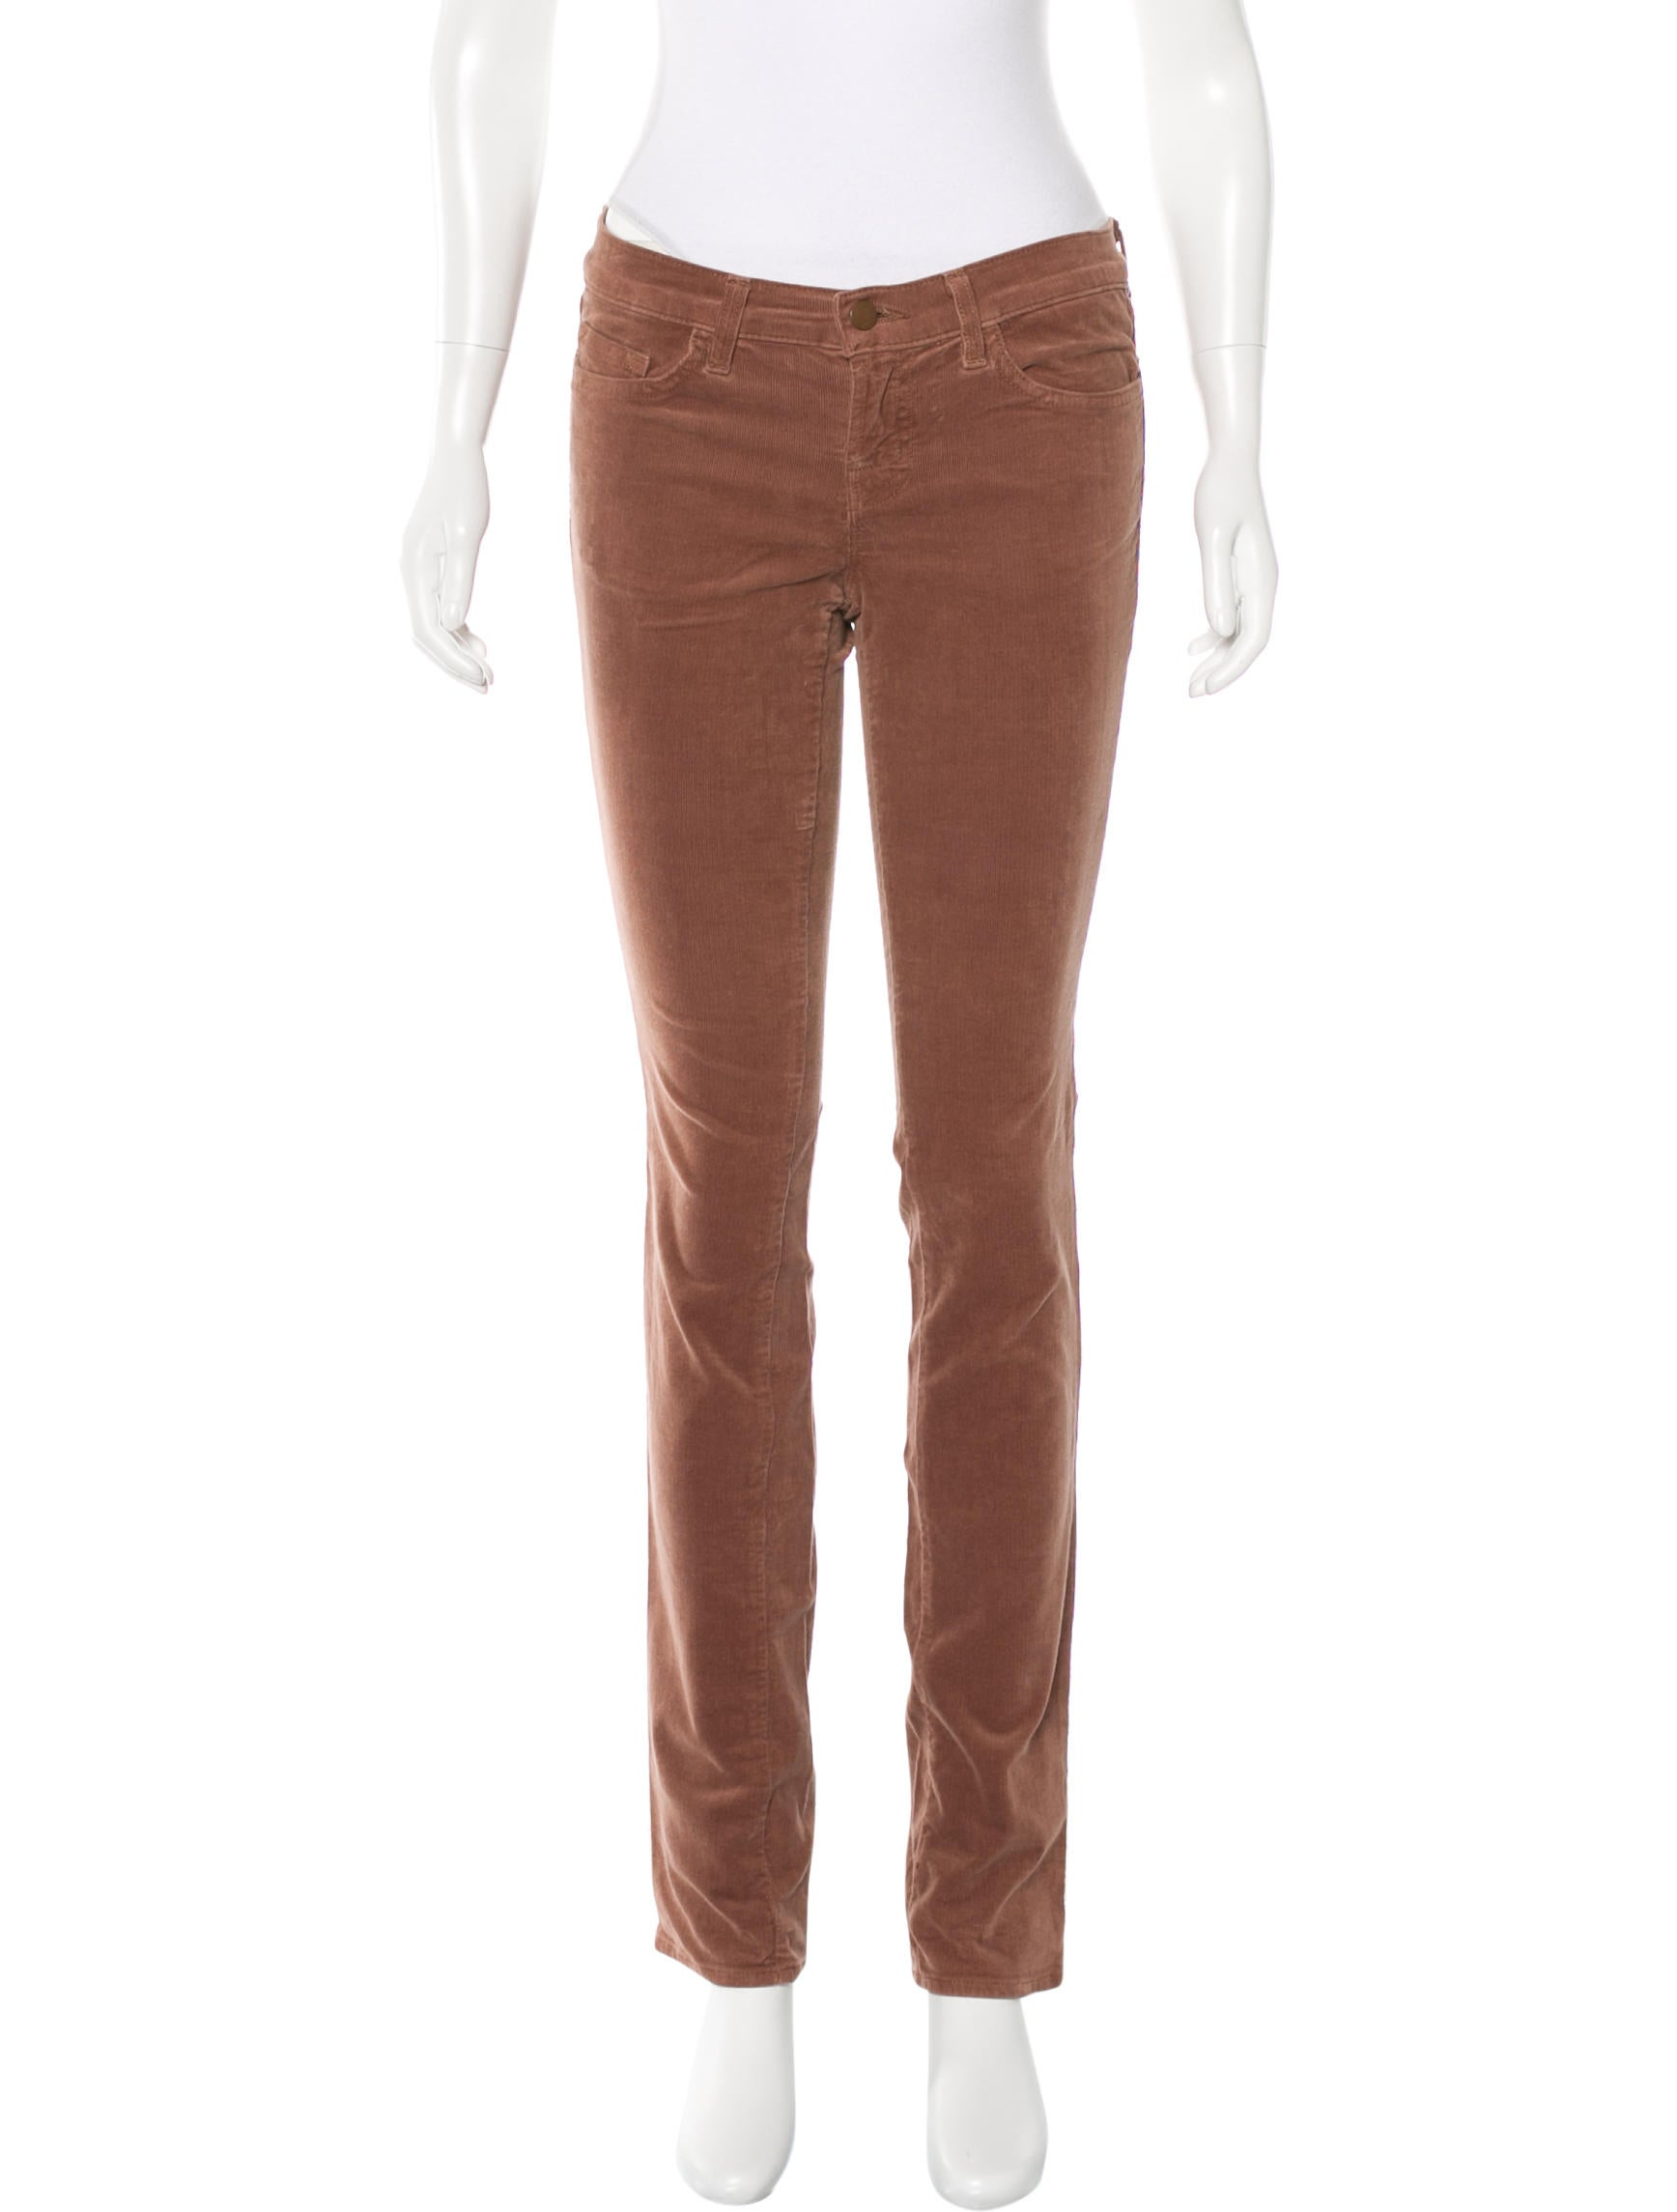 J Brand Low-Rise Corduroy Jeans - Clothing